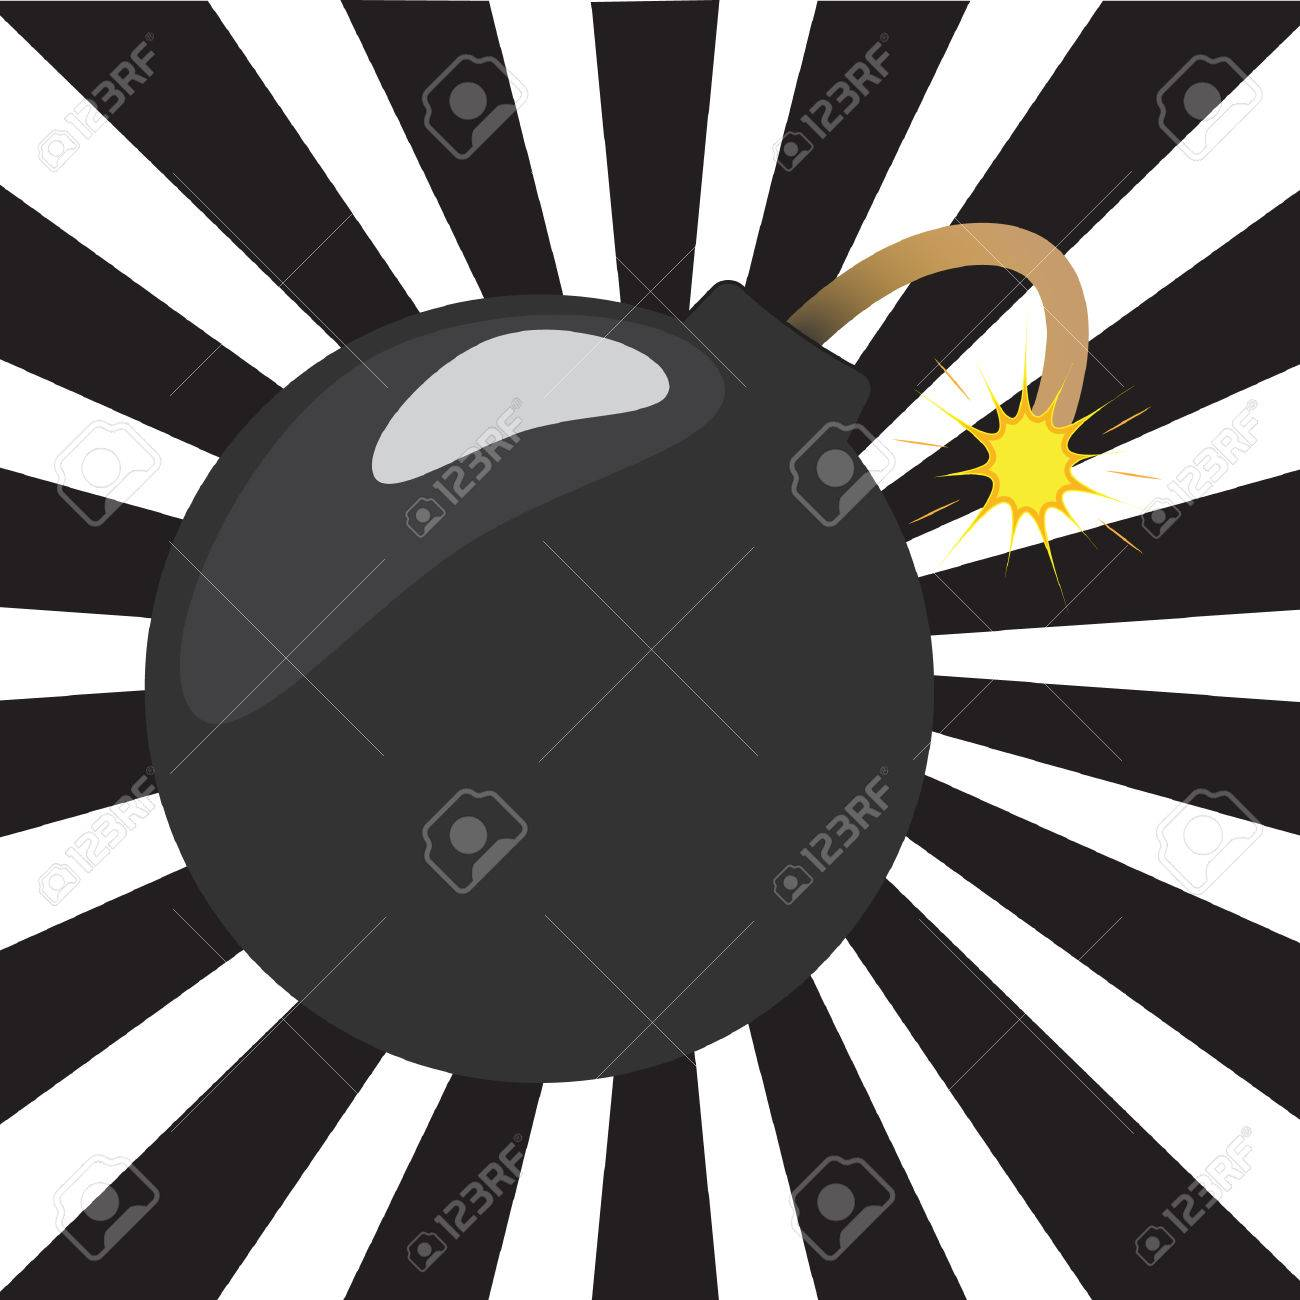 Cartoon bomb with a black and white sunburst background Stock Vector - 24710603